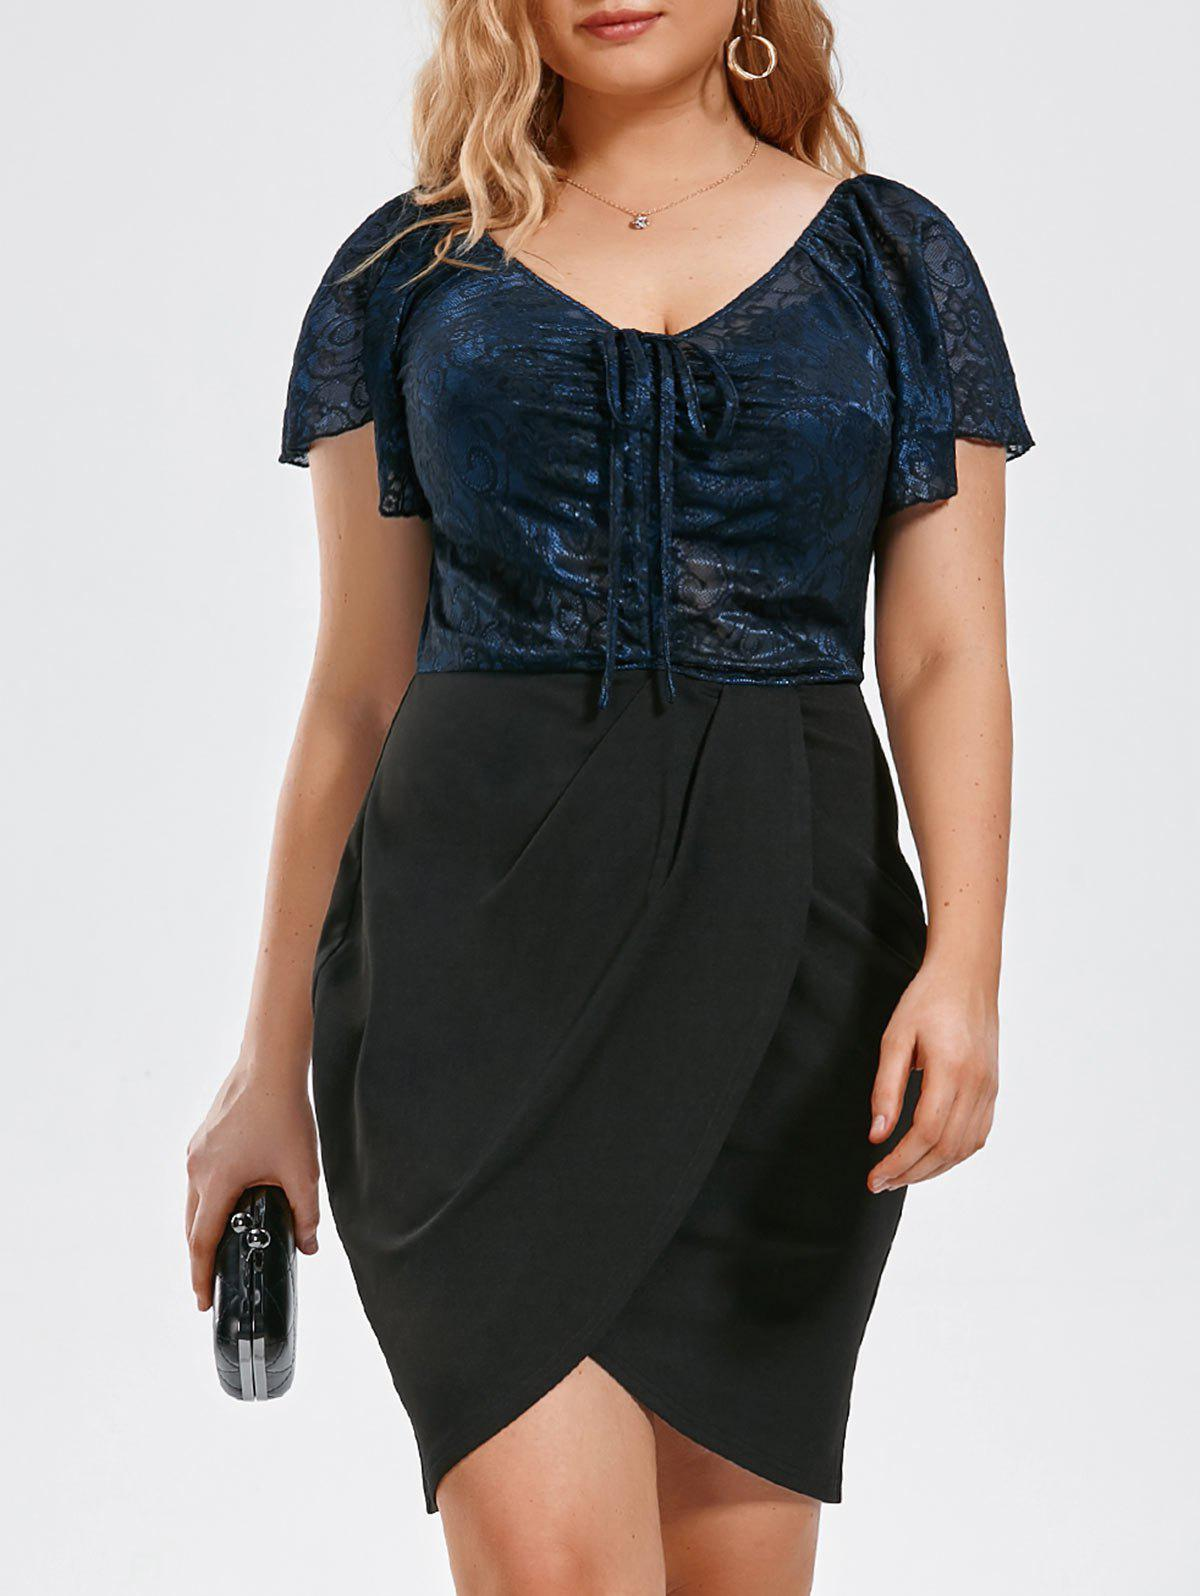 Plus Size Tiny Floral Sheer Tulip DressWOMEN<br><br>Size: 2XL; Color: BLUE AND BLACK; Style: Brief; Material: Polyester,Spandex; Silhouette: Sheath; Dresses Length: Knee-Length; Neckline: V-Neck; Sleeve Length: Short Sleeves; Pattern Type: Floral; With Belt: No; Season: Summer; Weight: 0.3120kg; Package Contents: 1 x Dress;